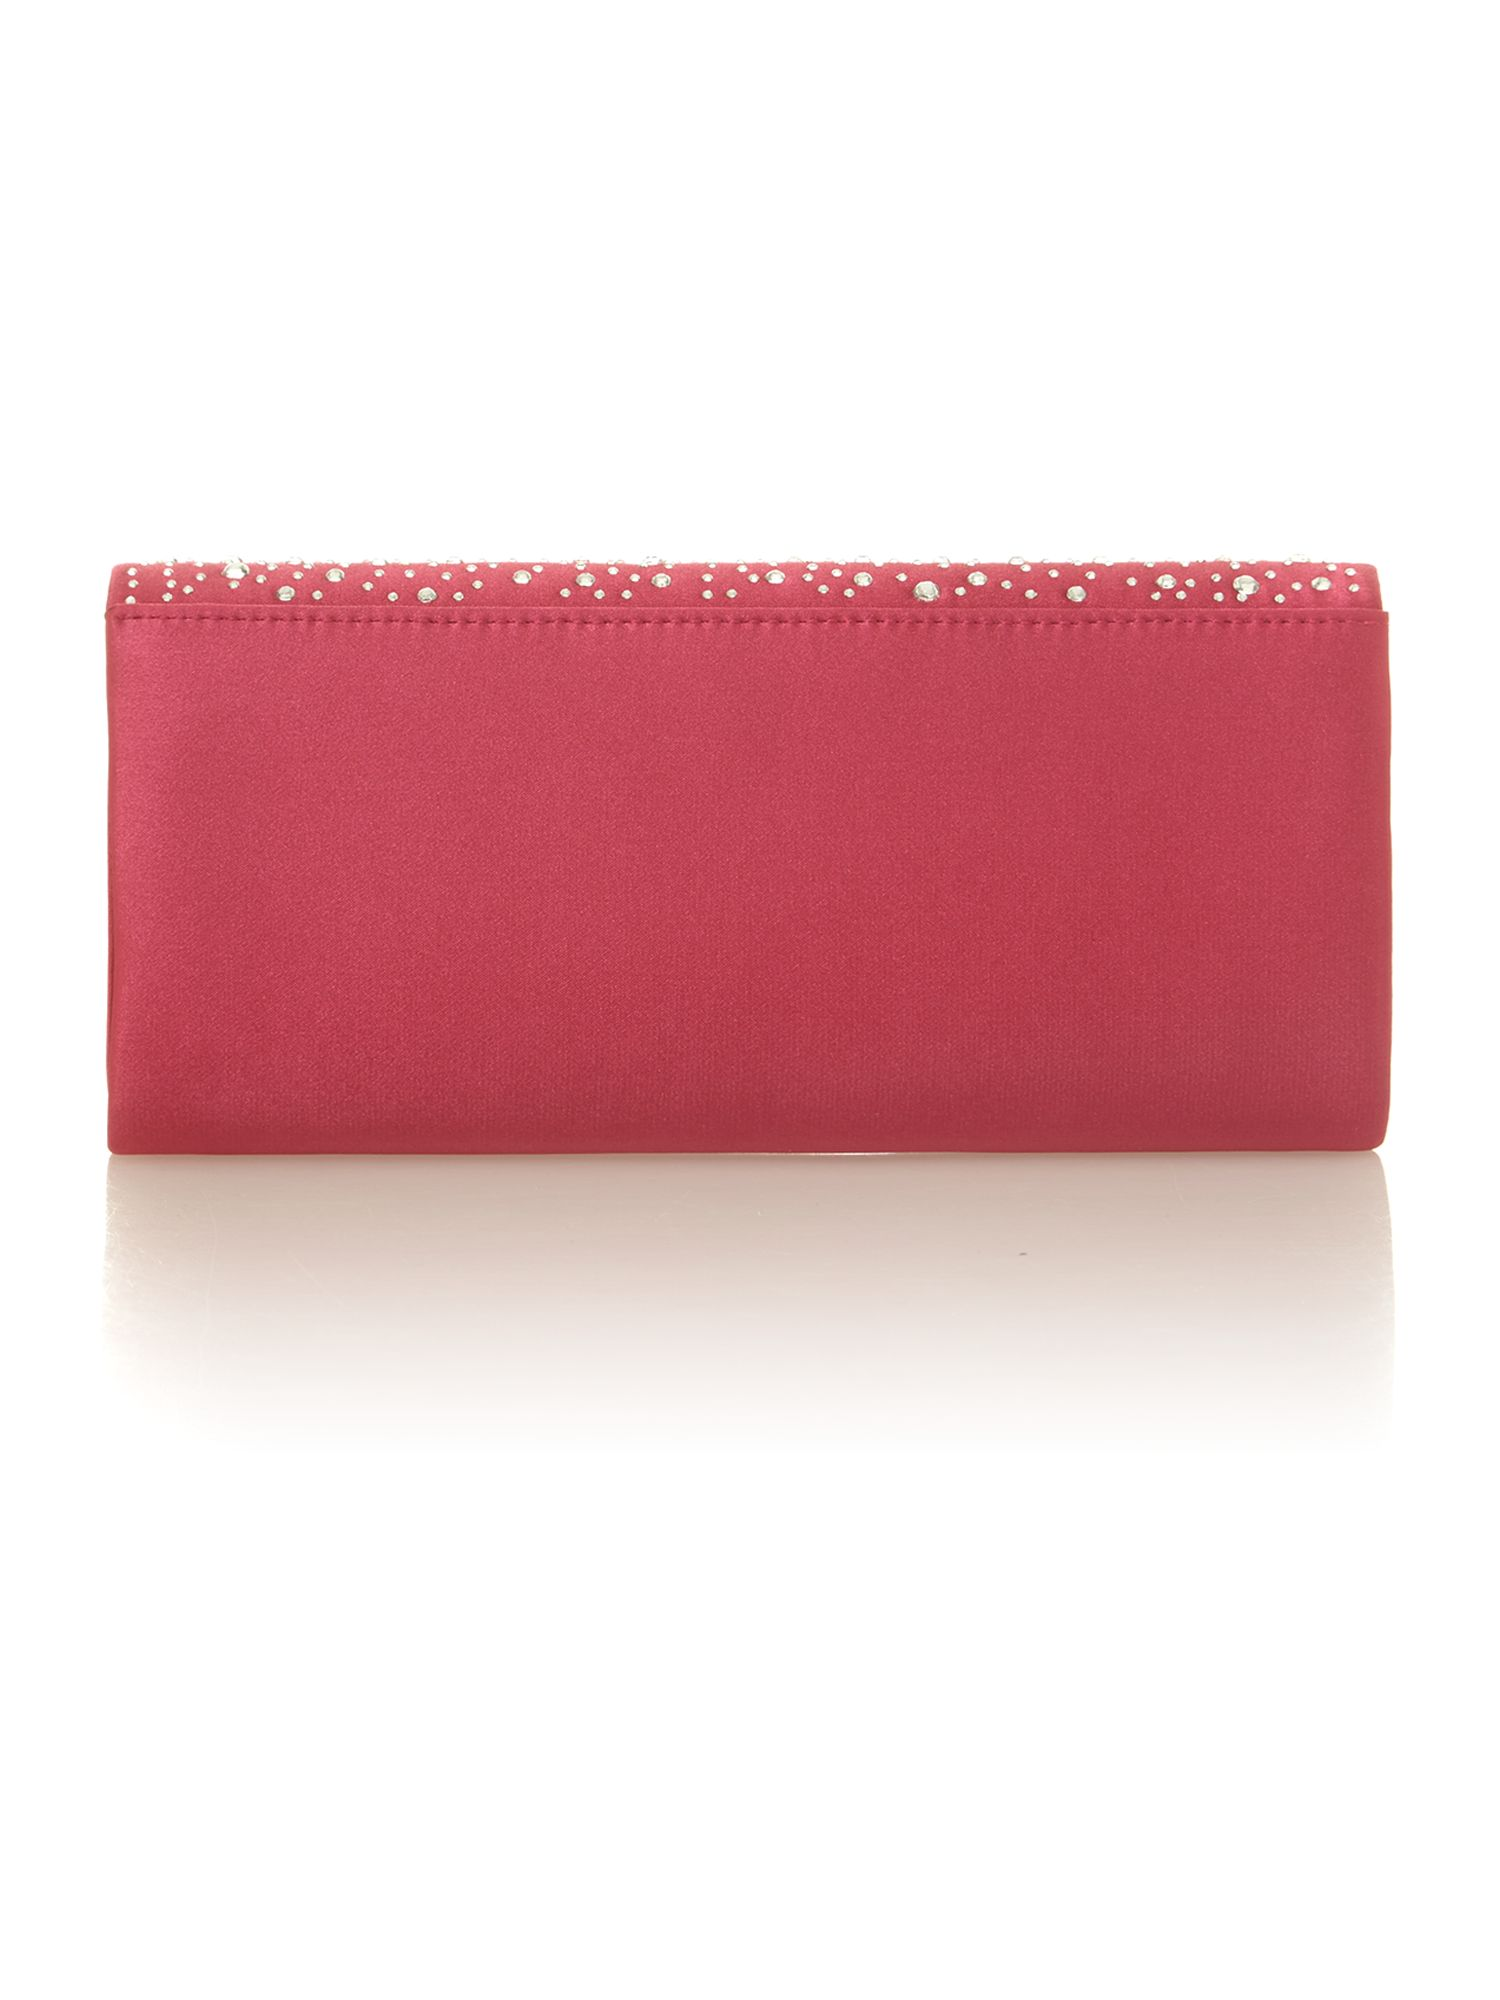 Flap over clutch bag